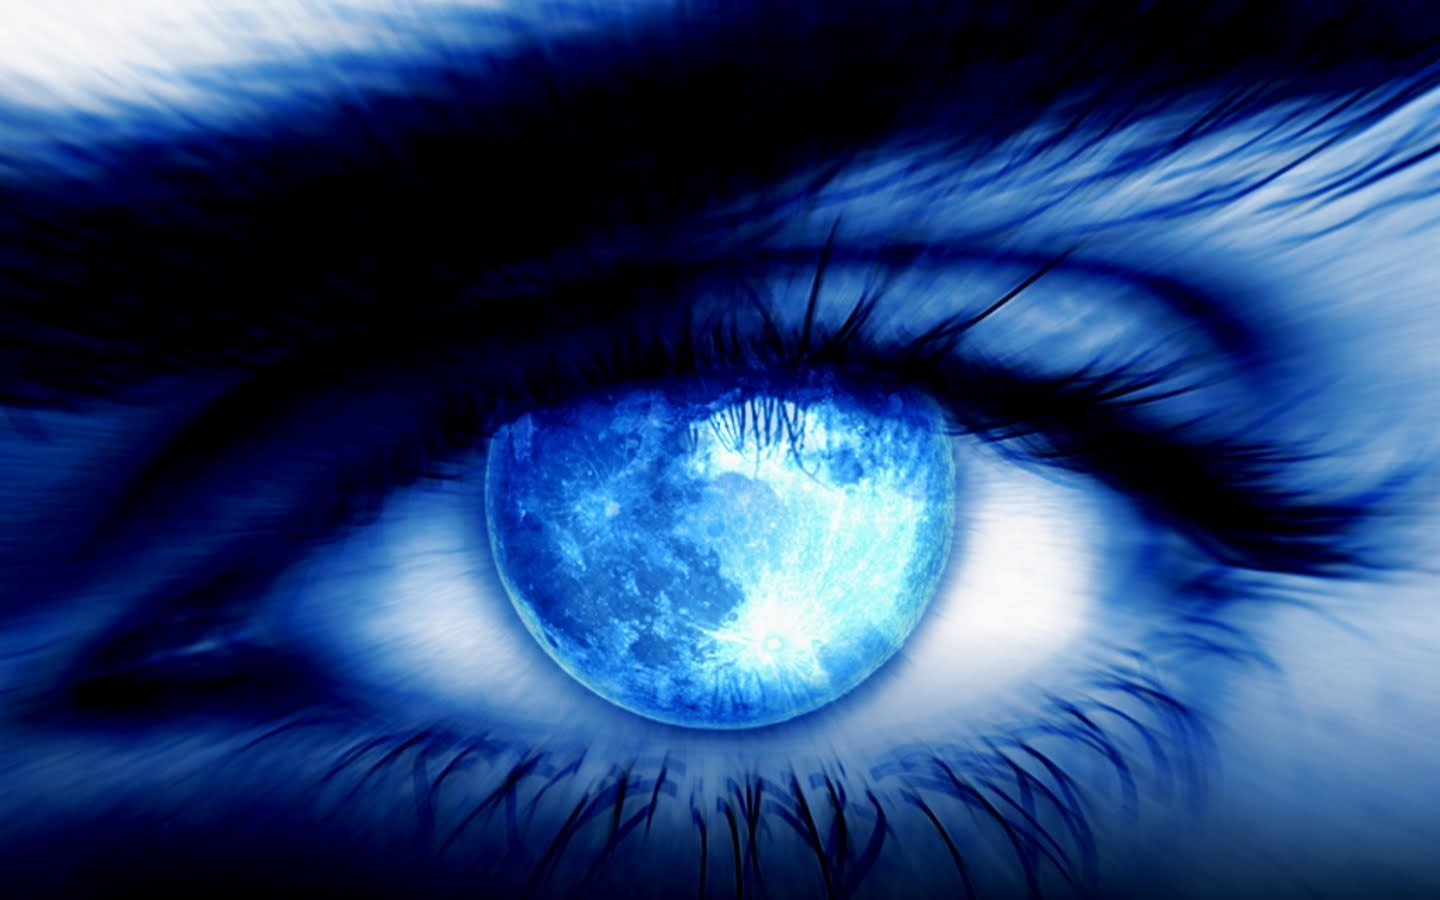 Glowing Blue Eye Water Effect gif by xmrsdanifilth | Photobucket